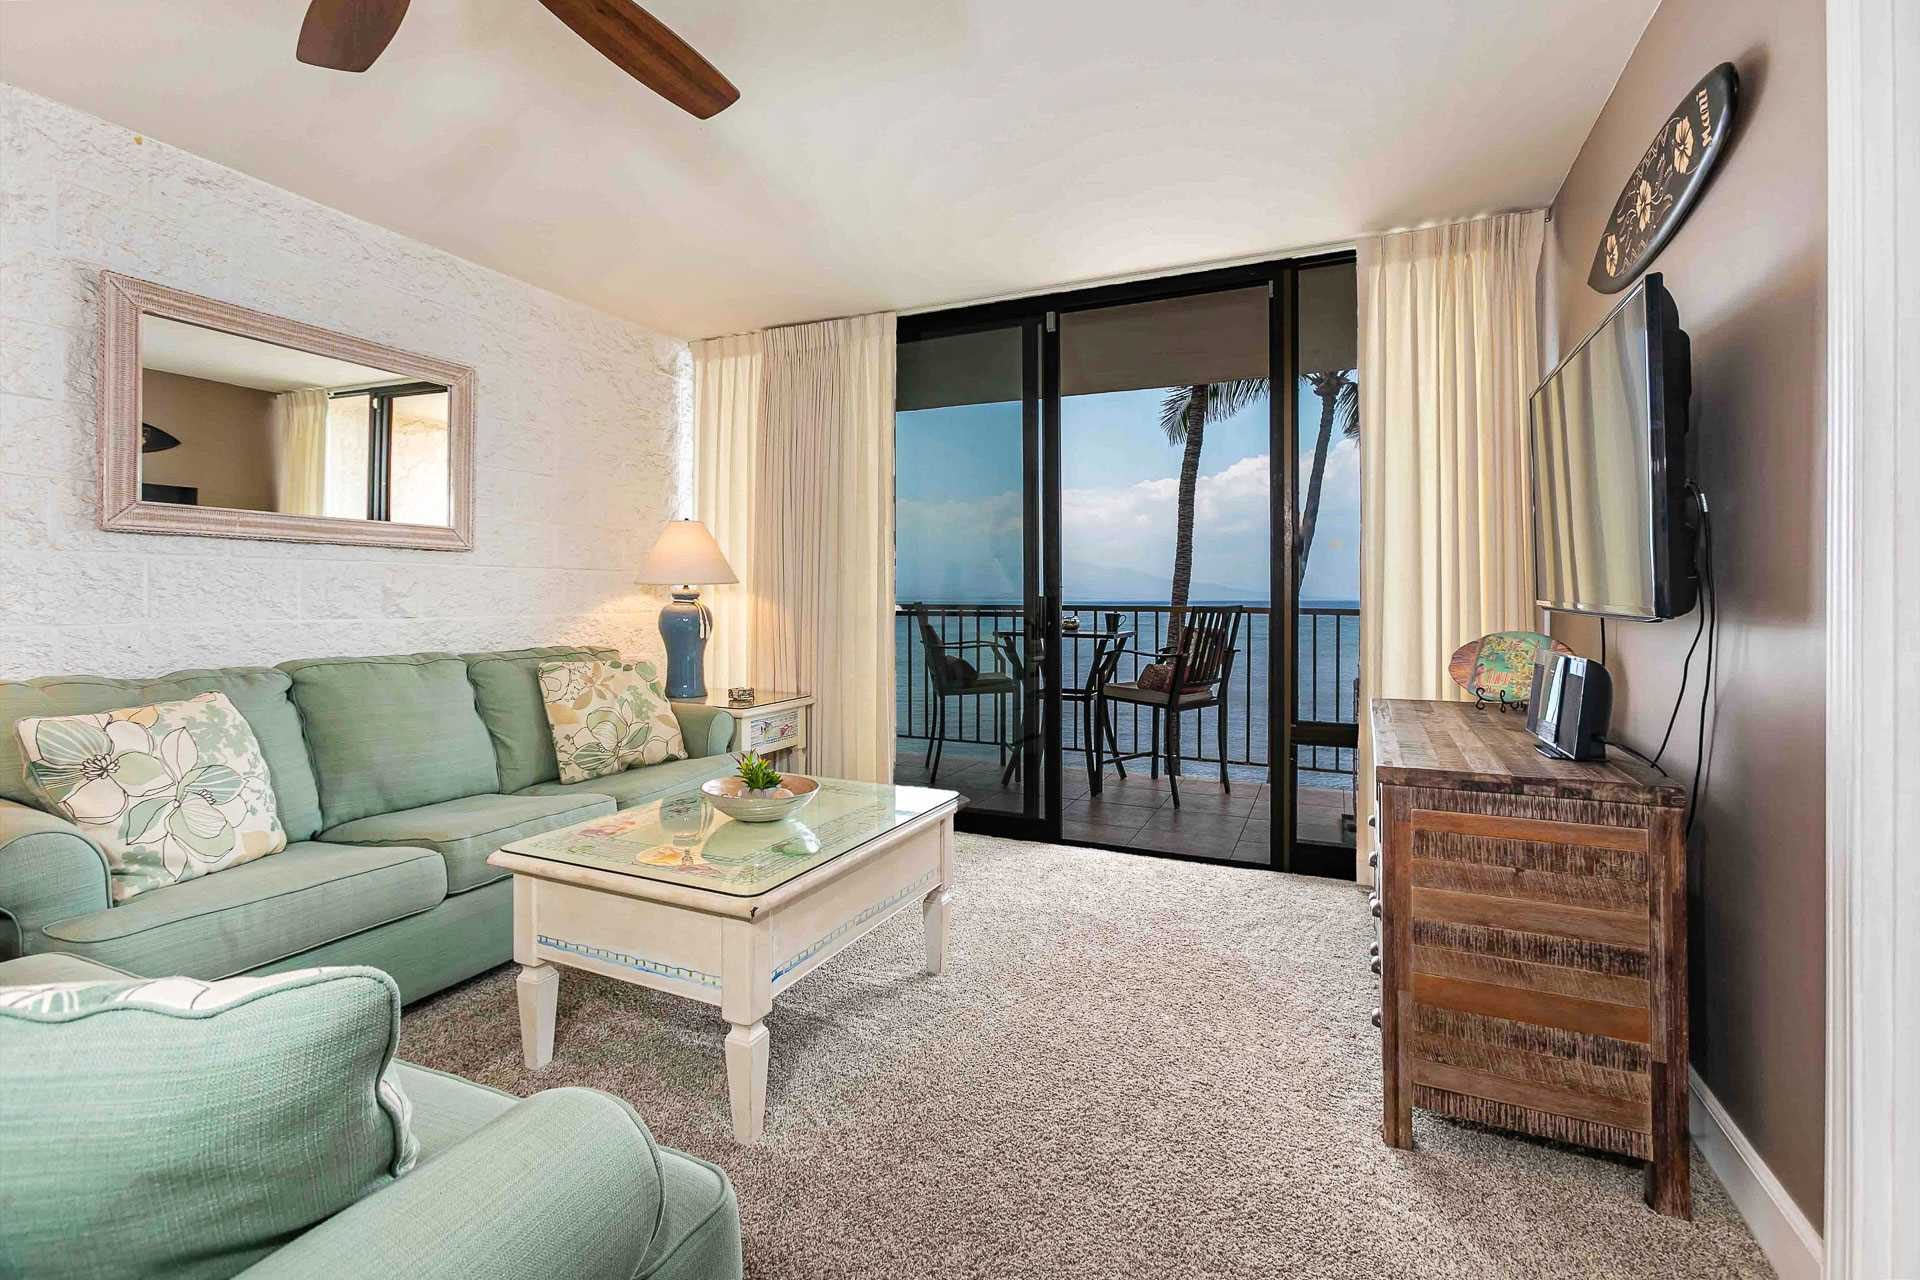 Enjoy the ocean view from your living room.